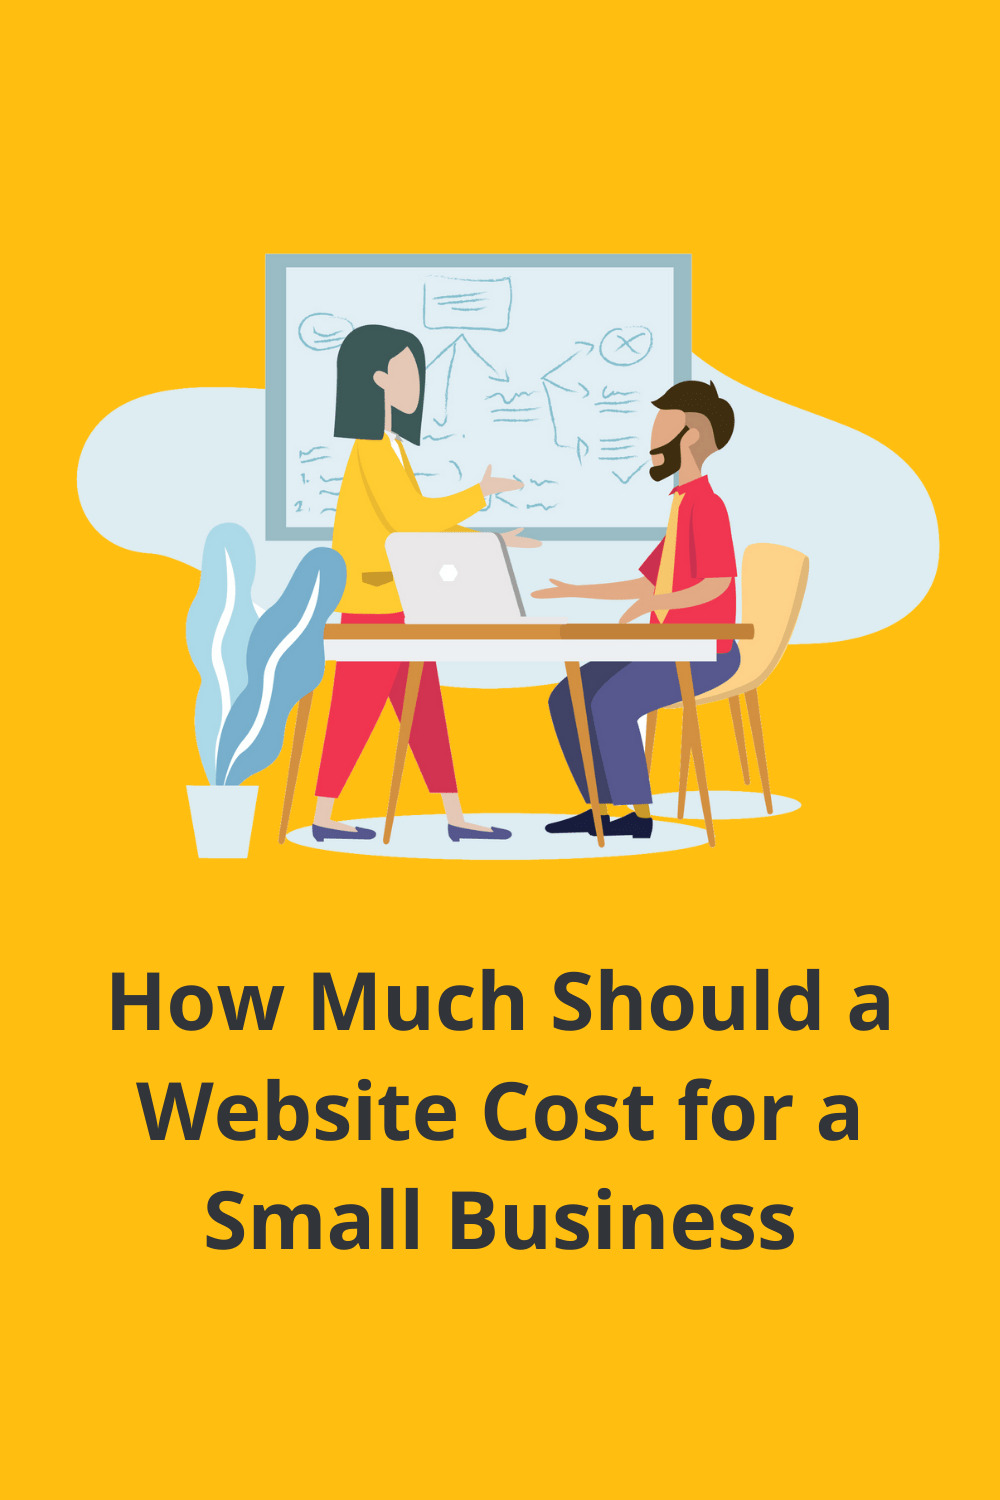 The cost of a website for a small business can be a bit expensive. However, investing in a high-converting website can significantly grow your business and revenue in no time. via @scopedesign